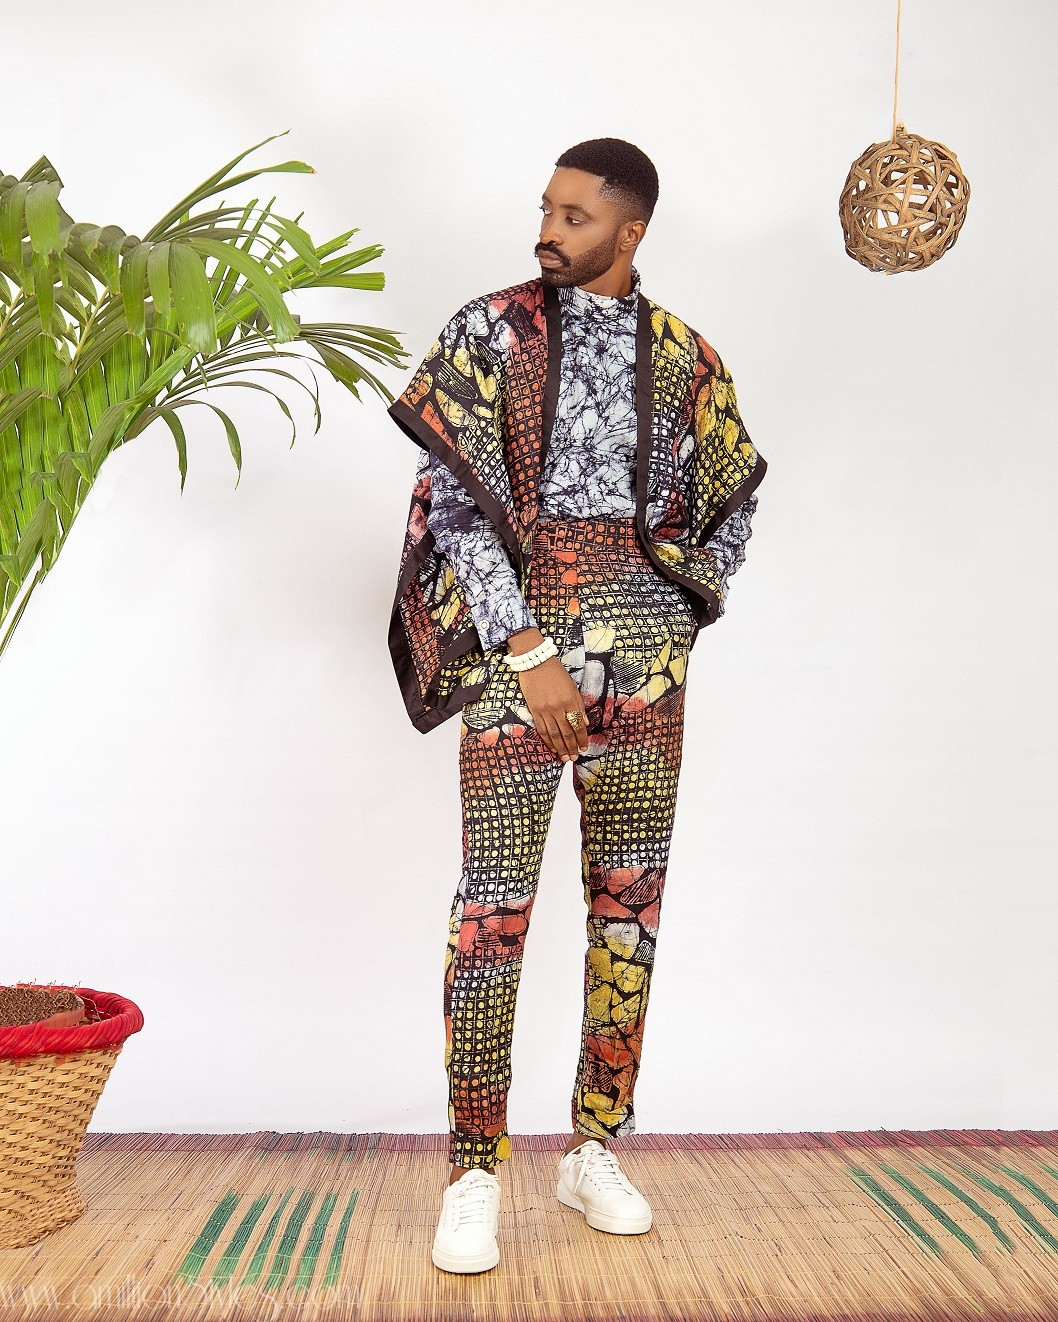 Ric Hassani Killing Us Softly In Patrickslim & Just Adire